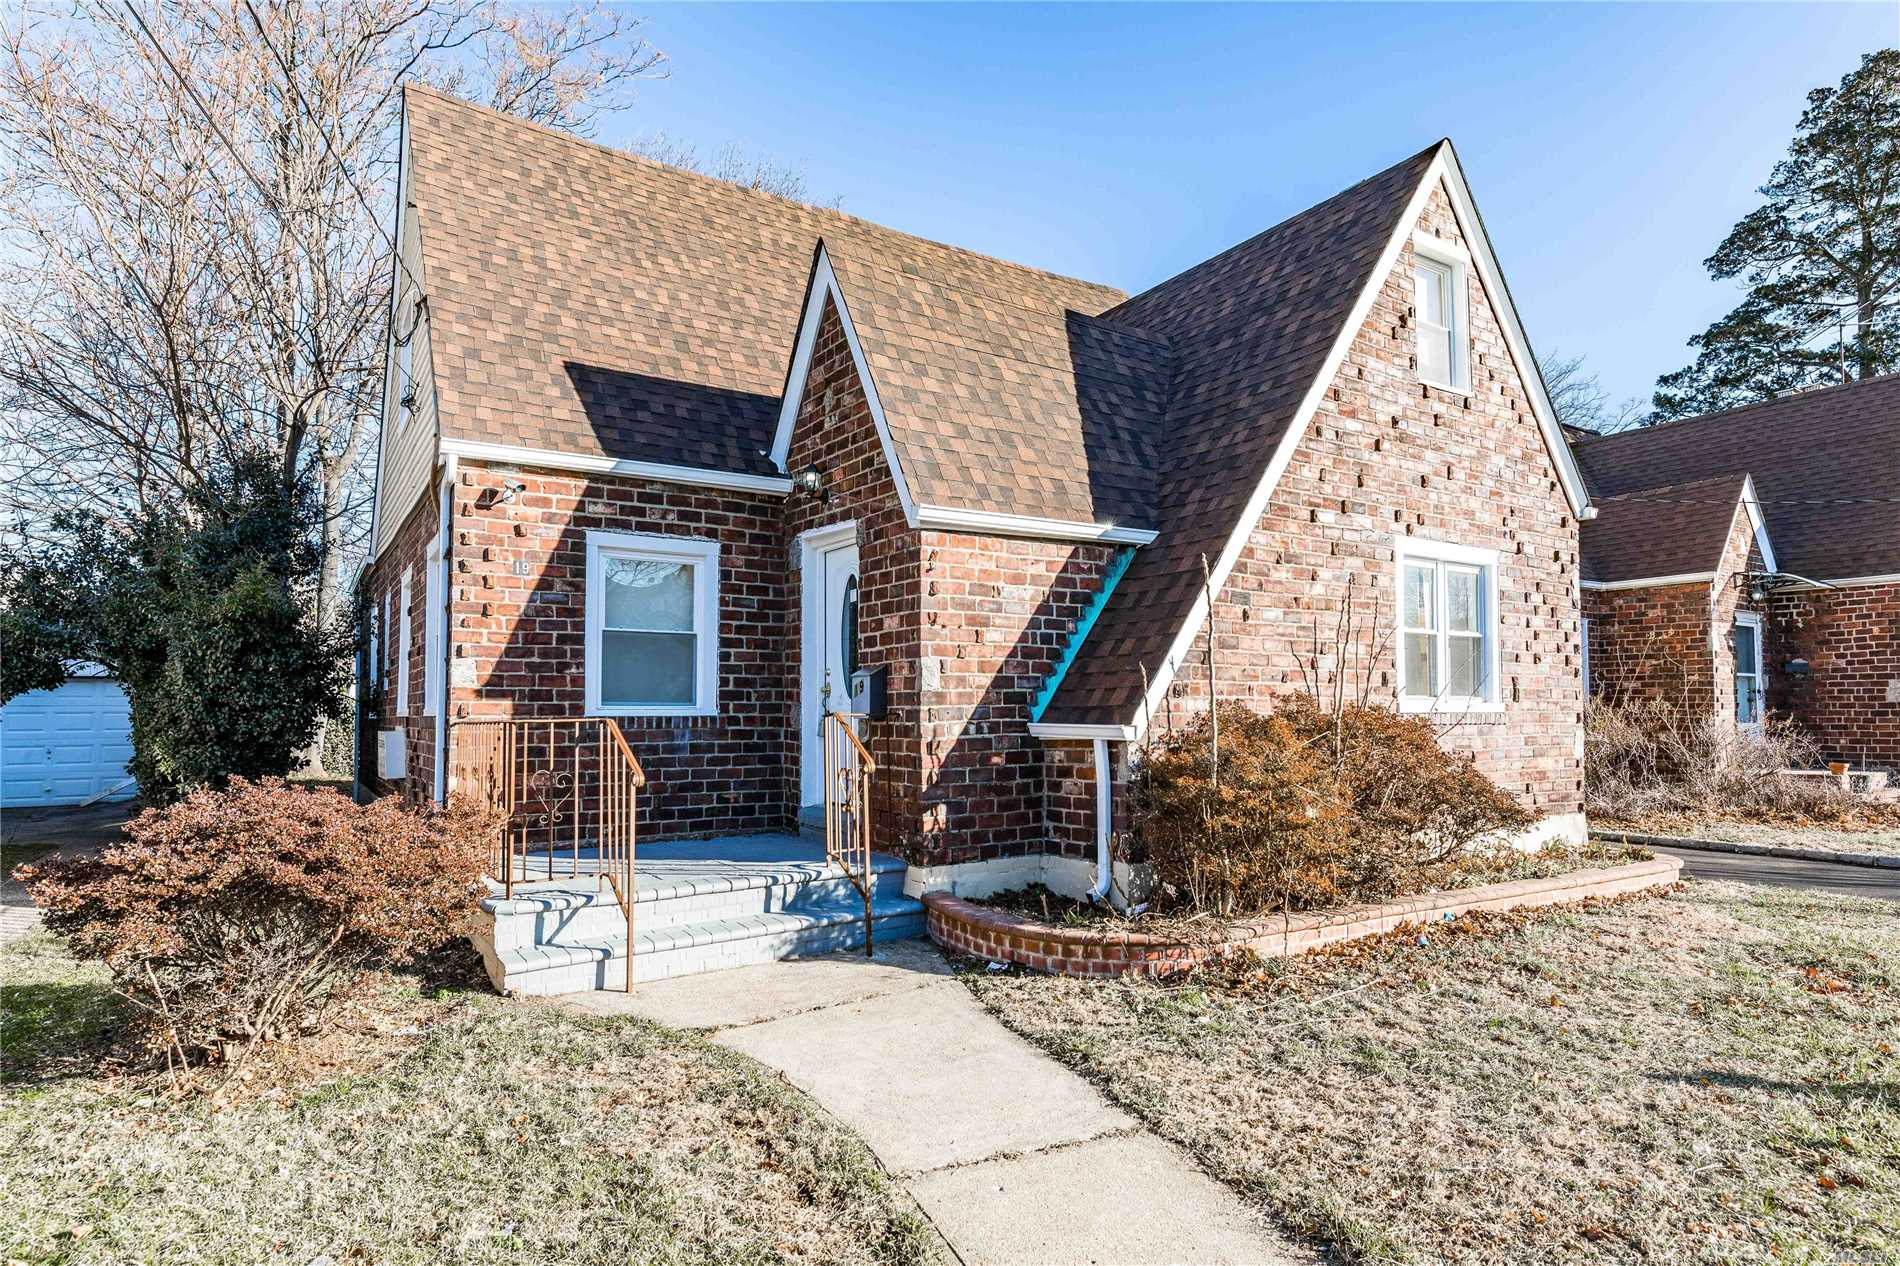 Great Location! Totally Renovated 4 Br Tudor! Uniondale School! Entry Foyer, Lr, Formal Dr, 3 Full Baths, Master Br On The Second Floor! Huge Full Finished Bsmt W/ Pvt Entrance. New Eik W/Stainless Steel Appliances And Granite Countertops! One Car Garage, Long Driveway!